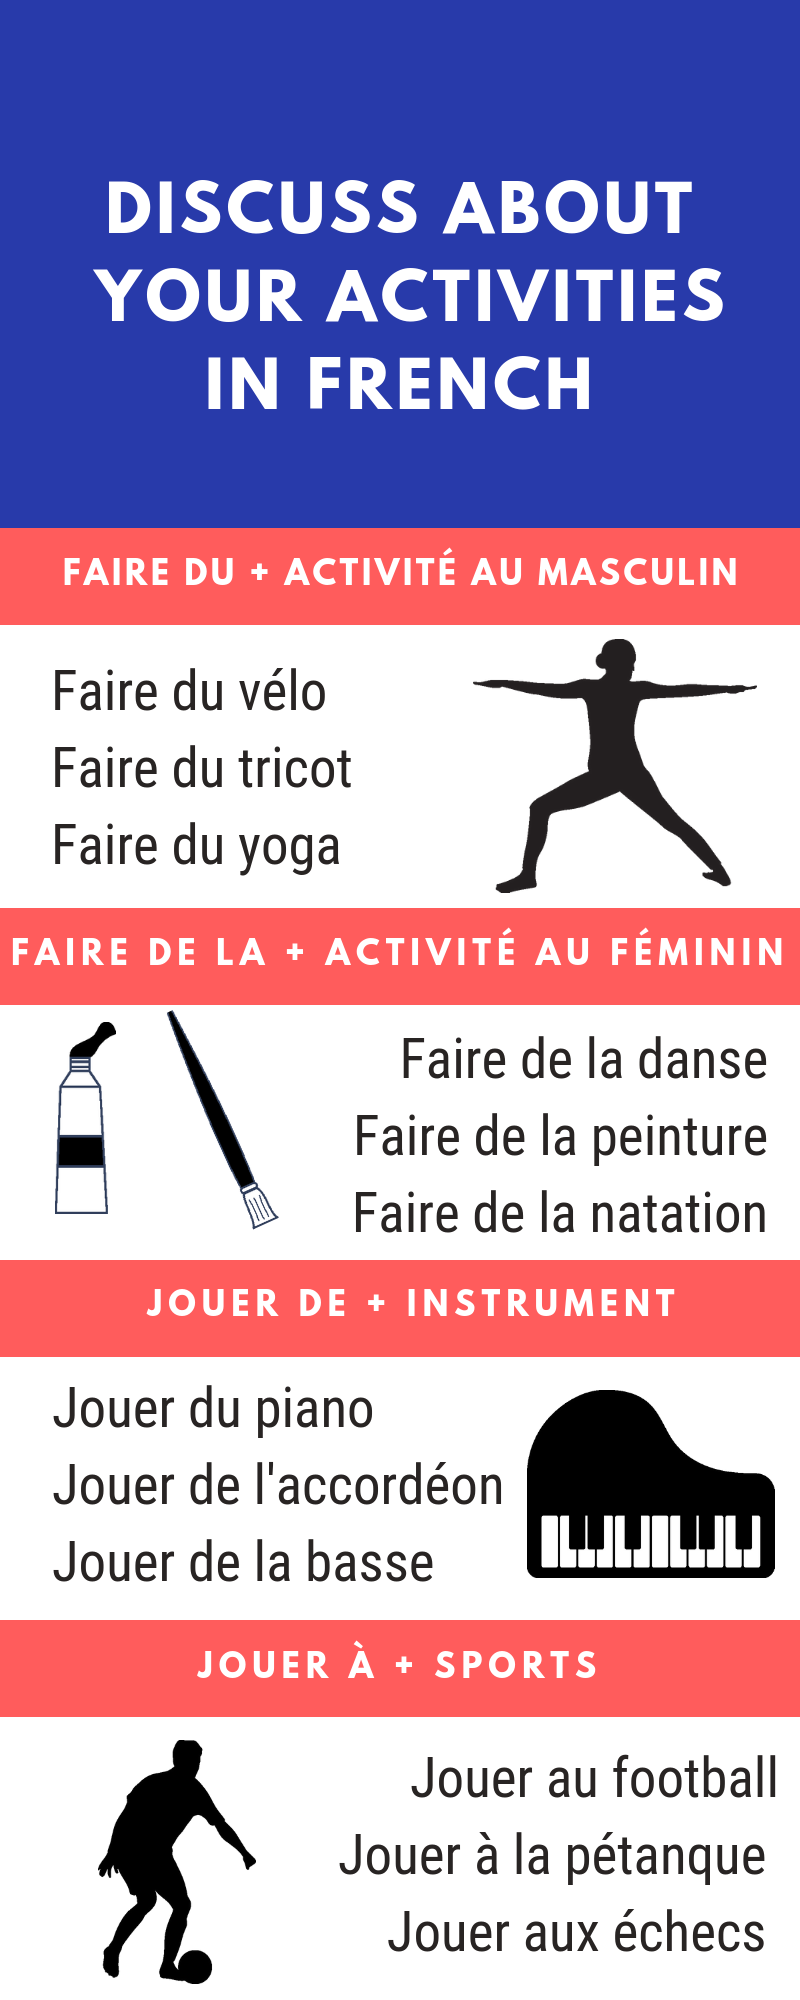 How to talk about your activities in French | The BEST of French